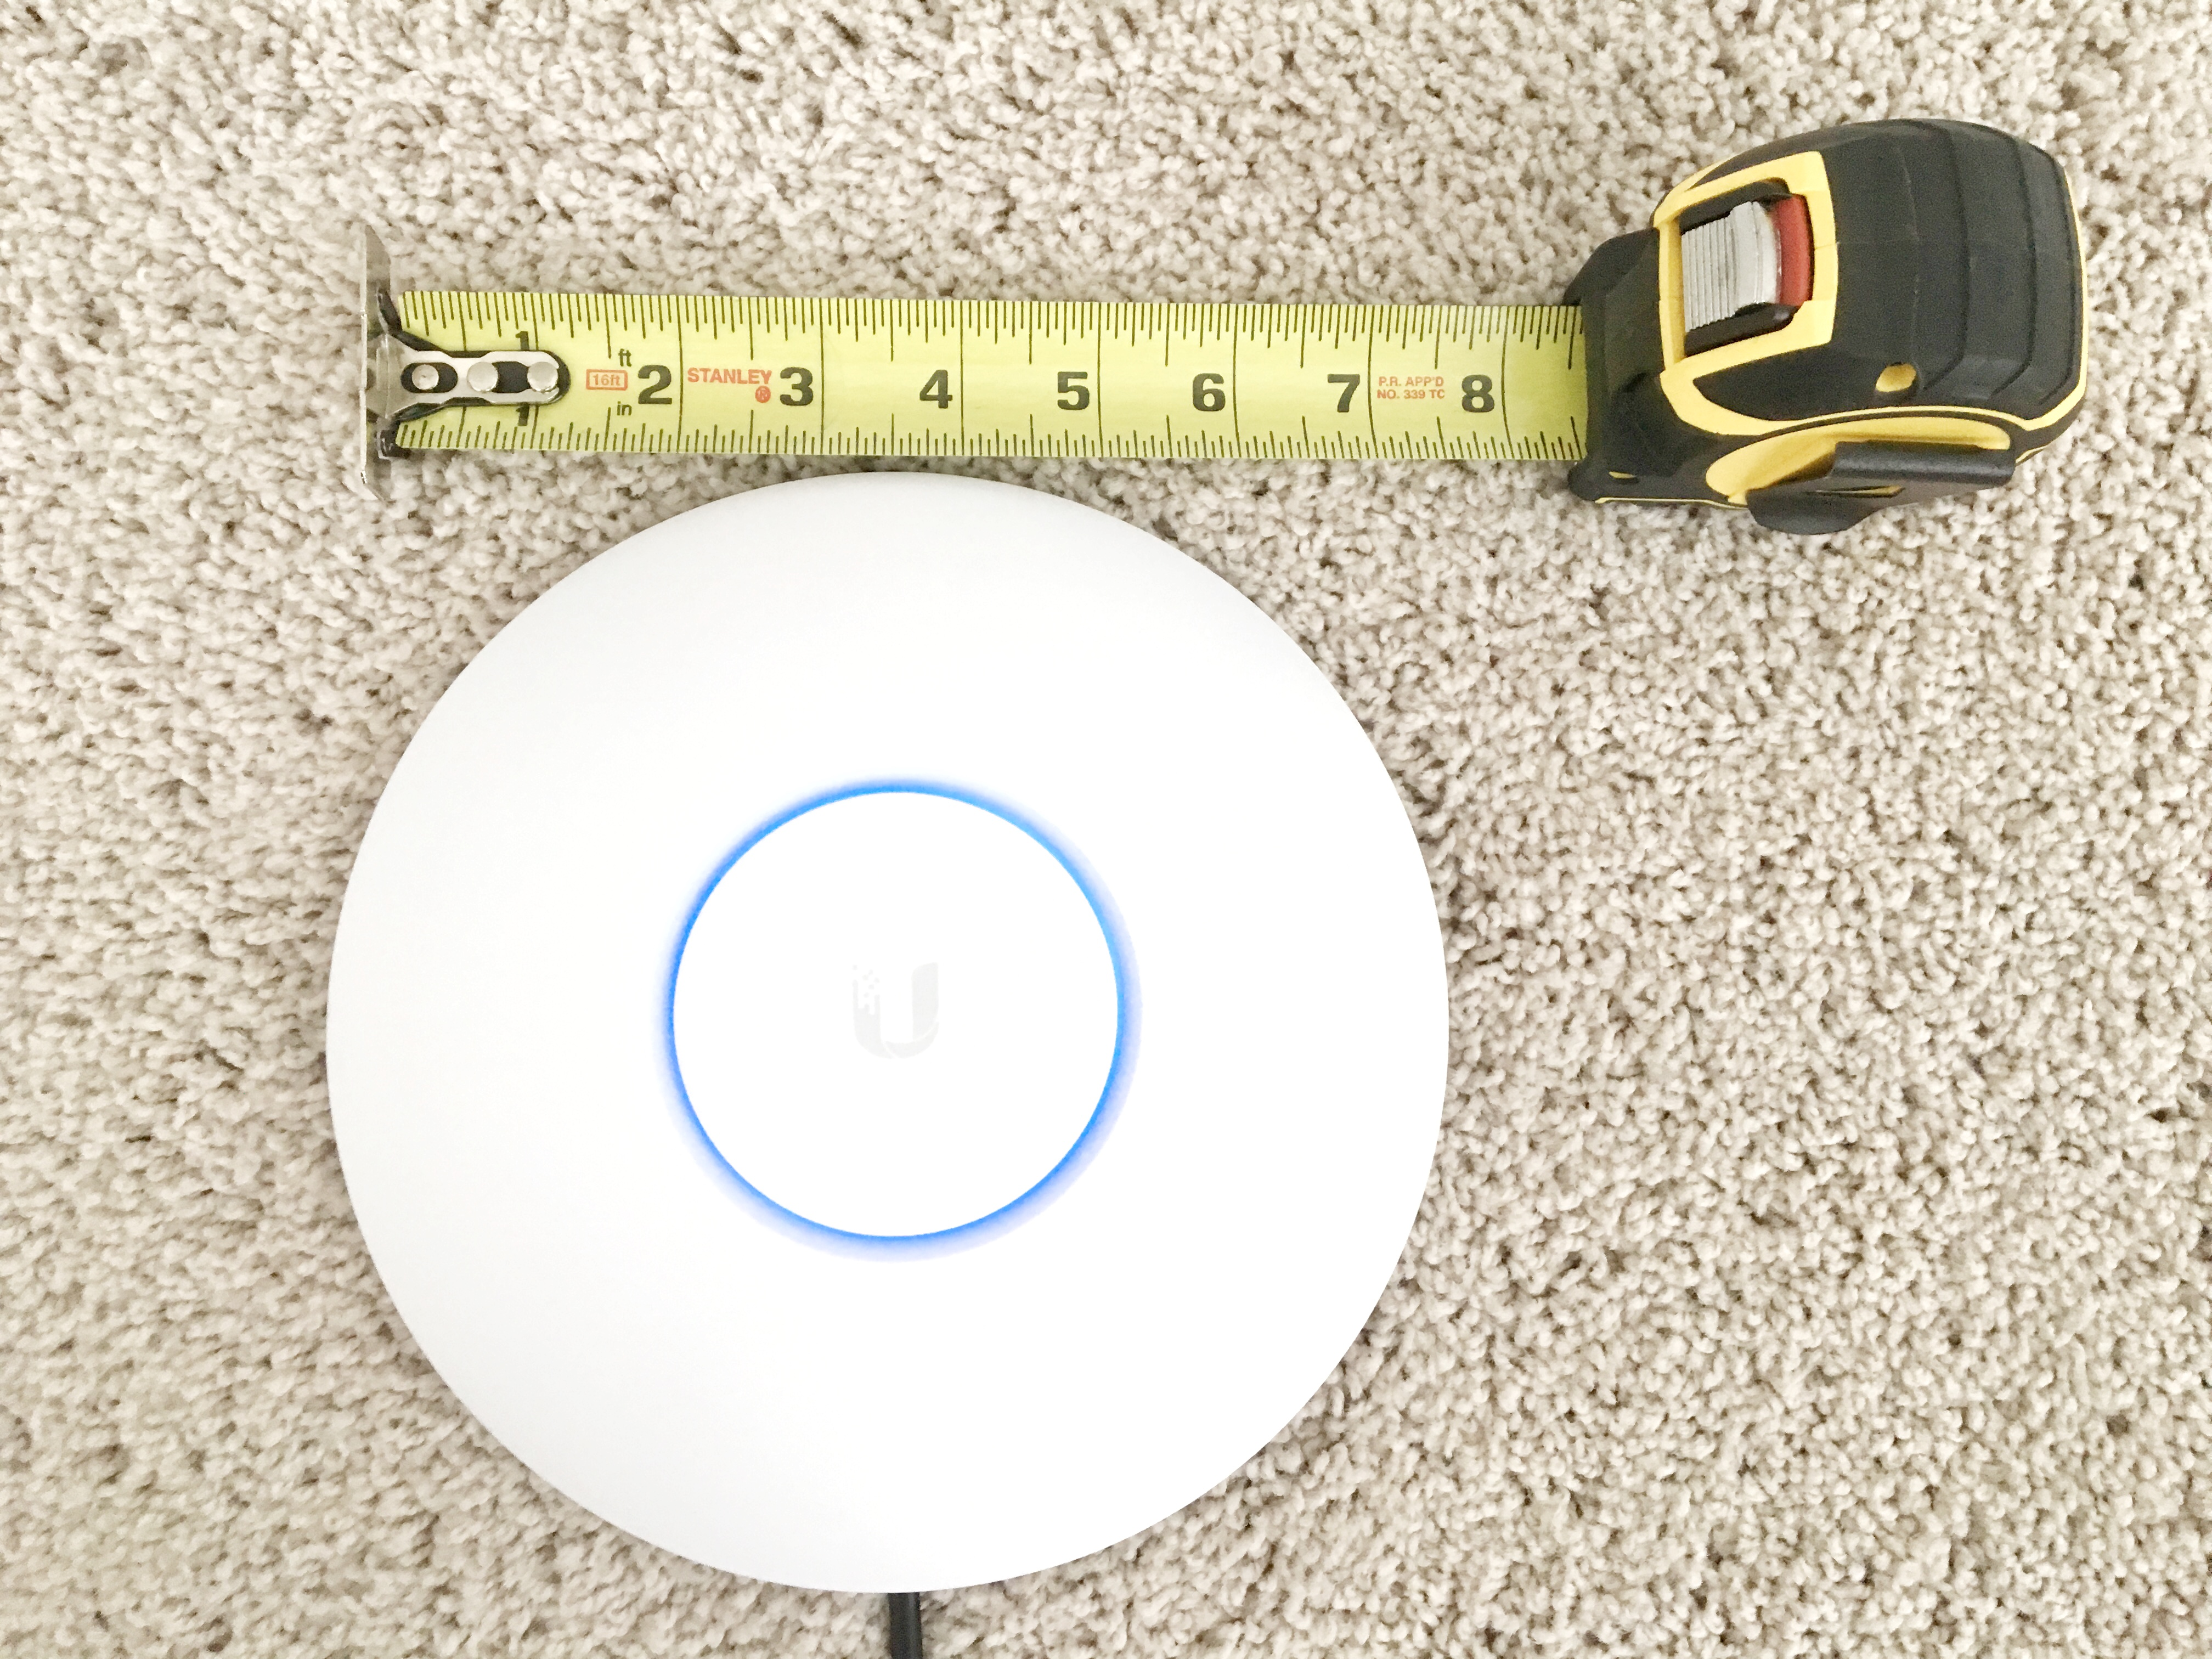 Building a secure high visibility WiFi network using Ubiquiti